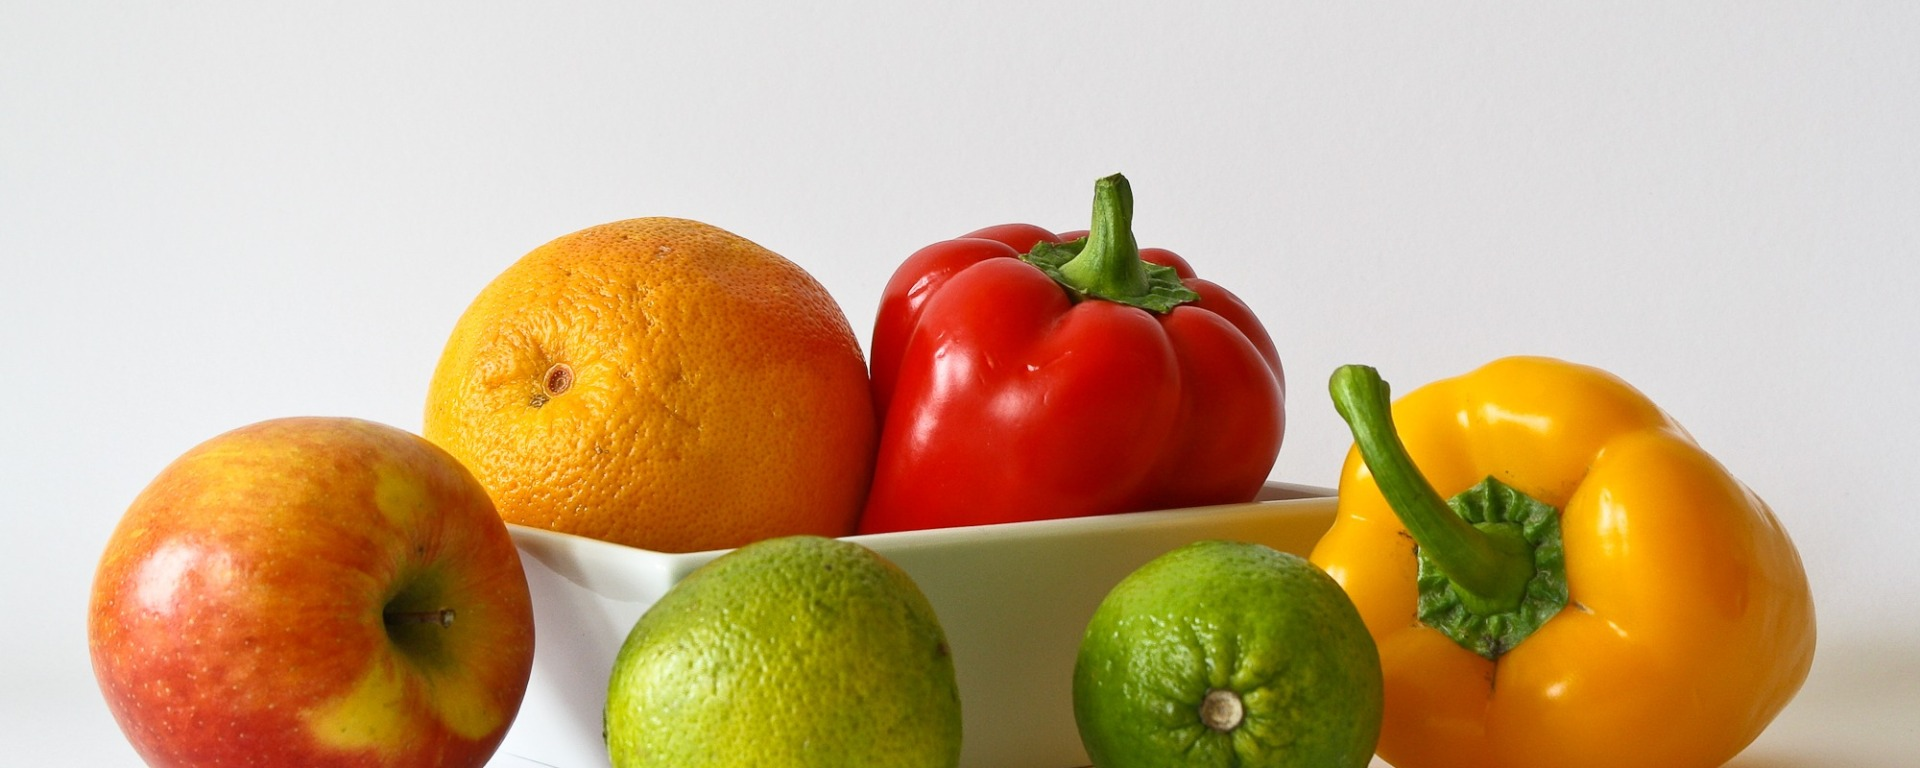 Bowl with peppers, limes, an apple, and an orange.